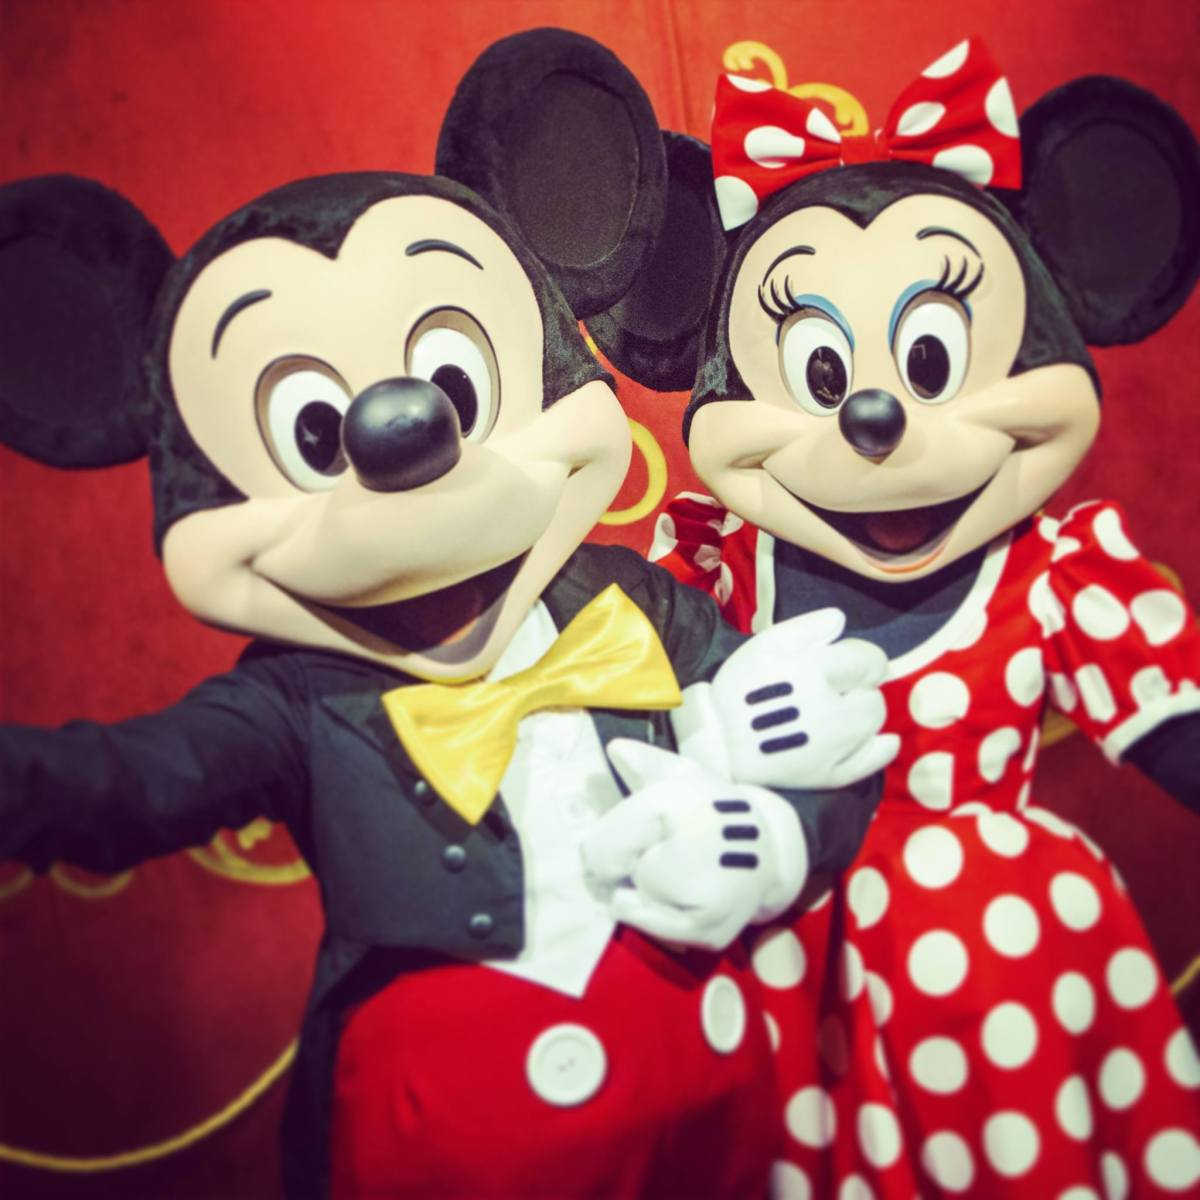 New Mickey & Minnie's Surprise Celebration Coming to the Magic Kingdom in 2019